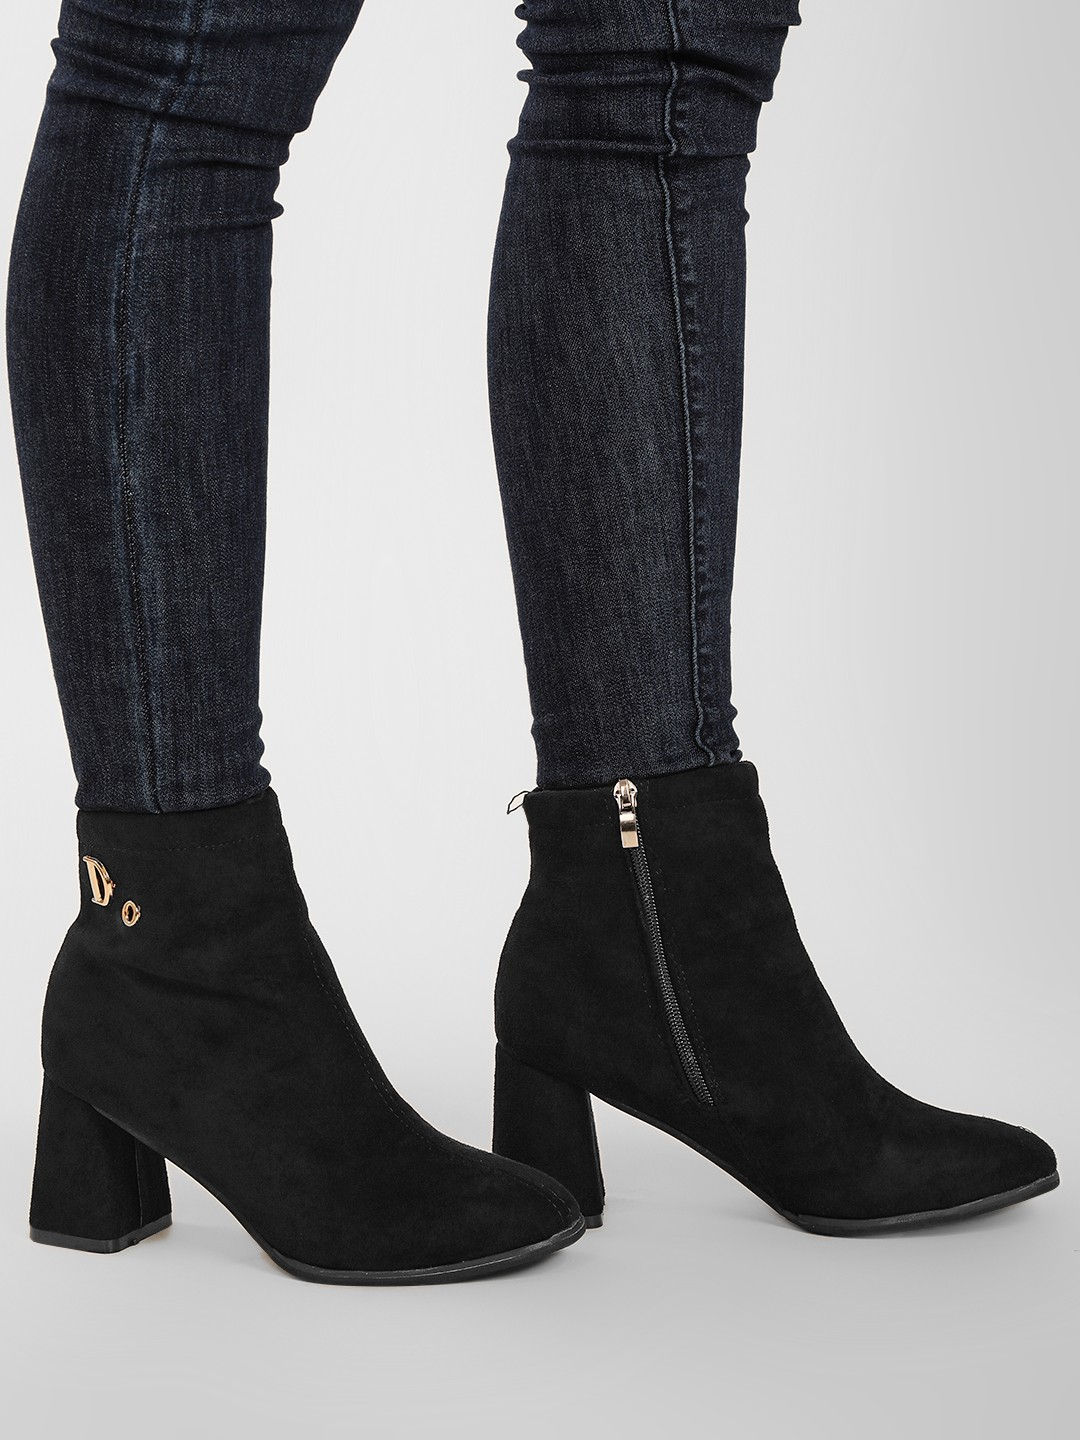 Sole Story Black Flared Block Heel Ankle Boots 1